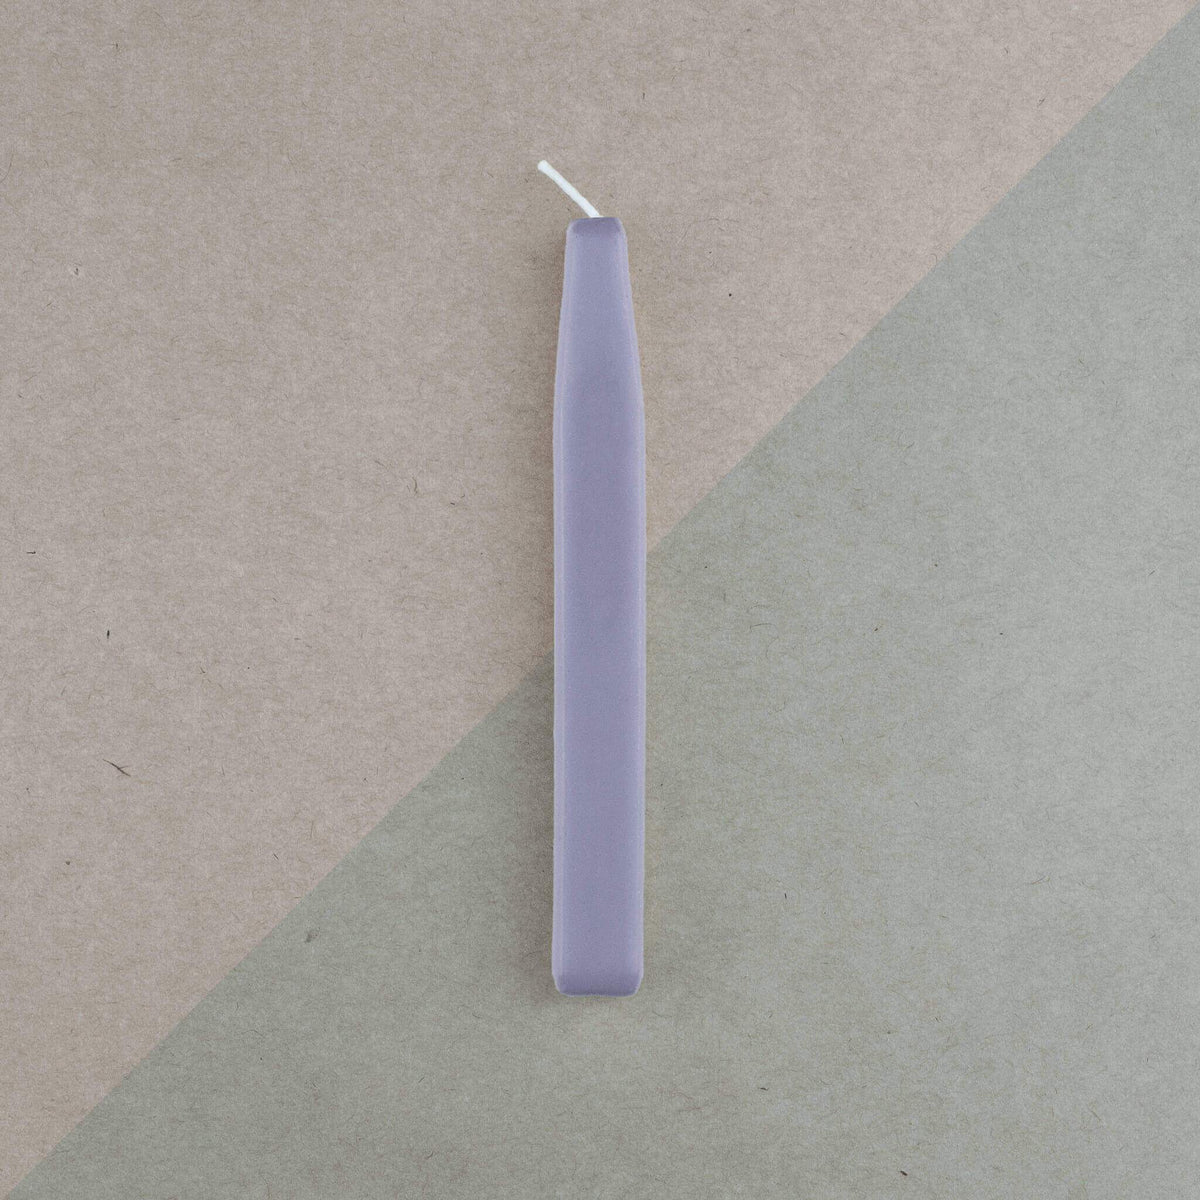 Kustom Haus Traditional Sealing Wax Stick with Wick - Smokey Lavender